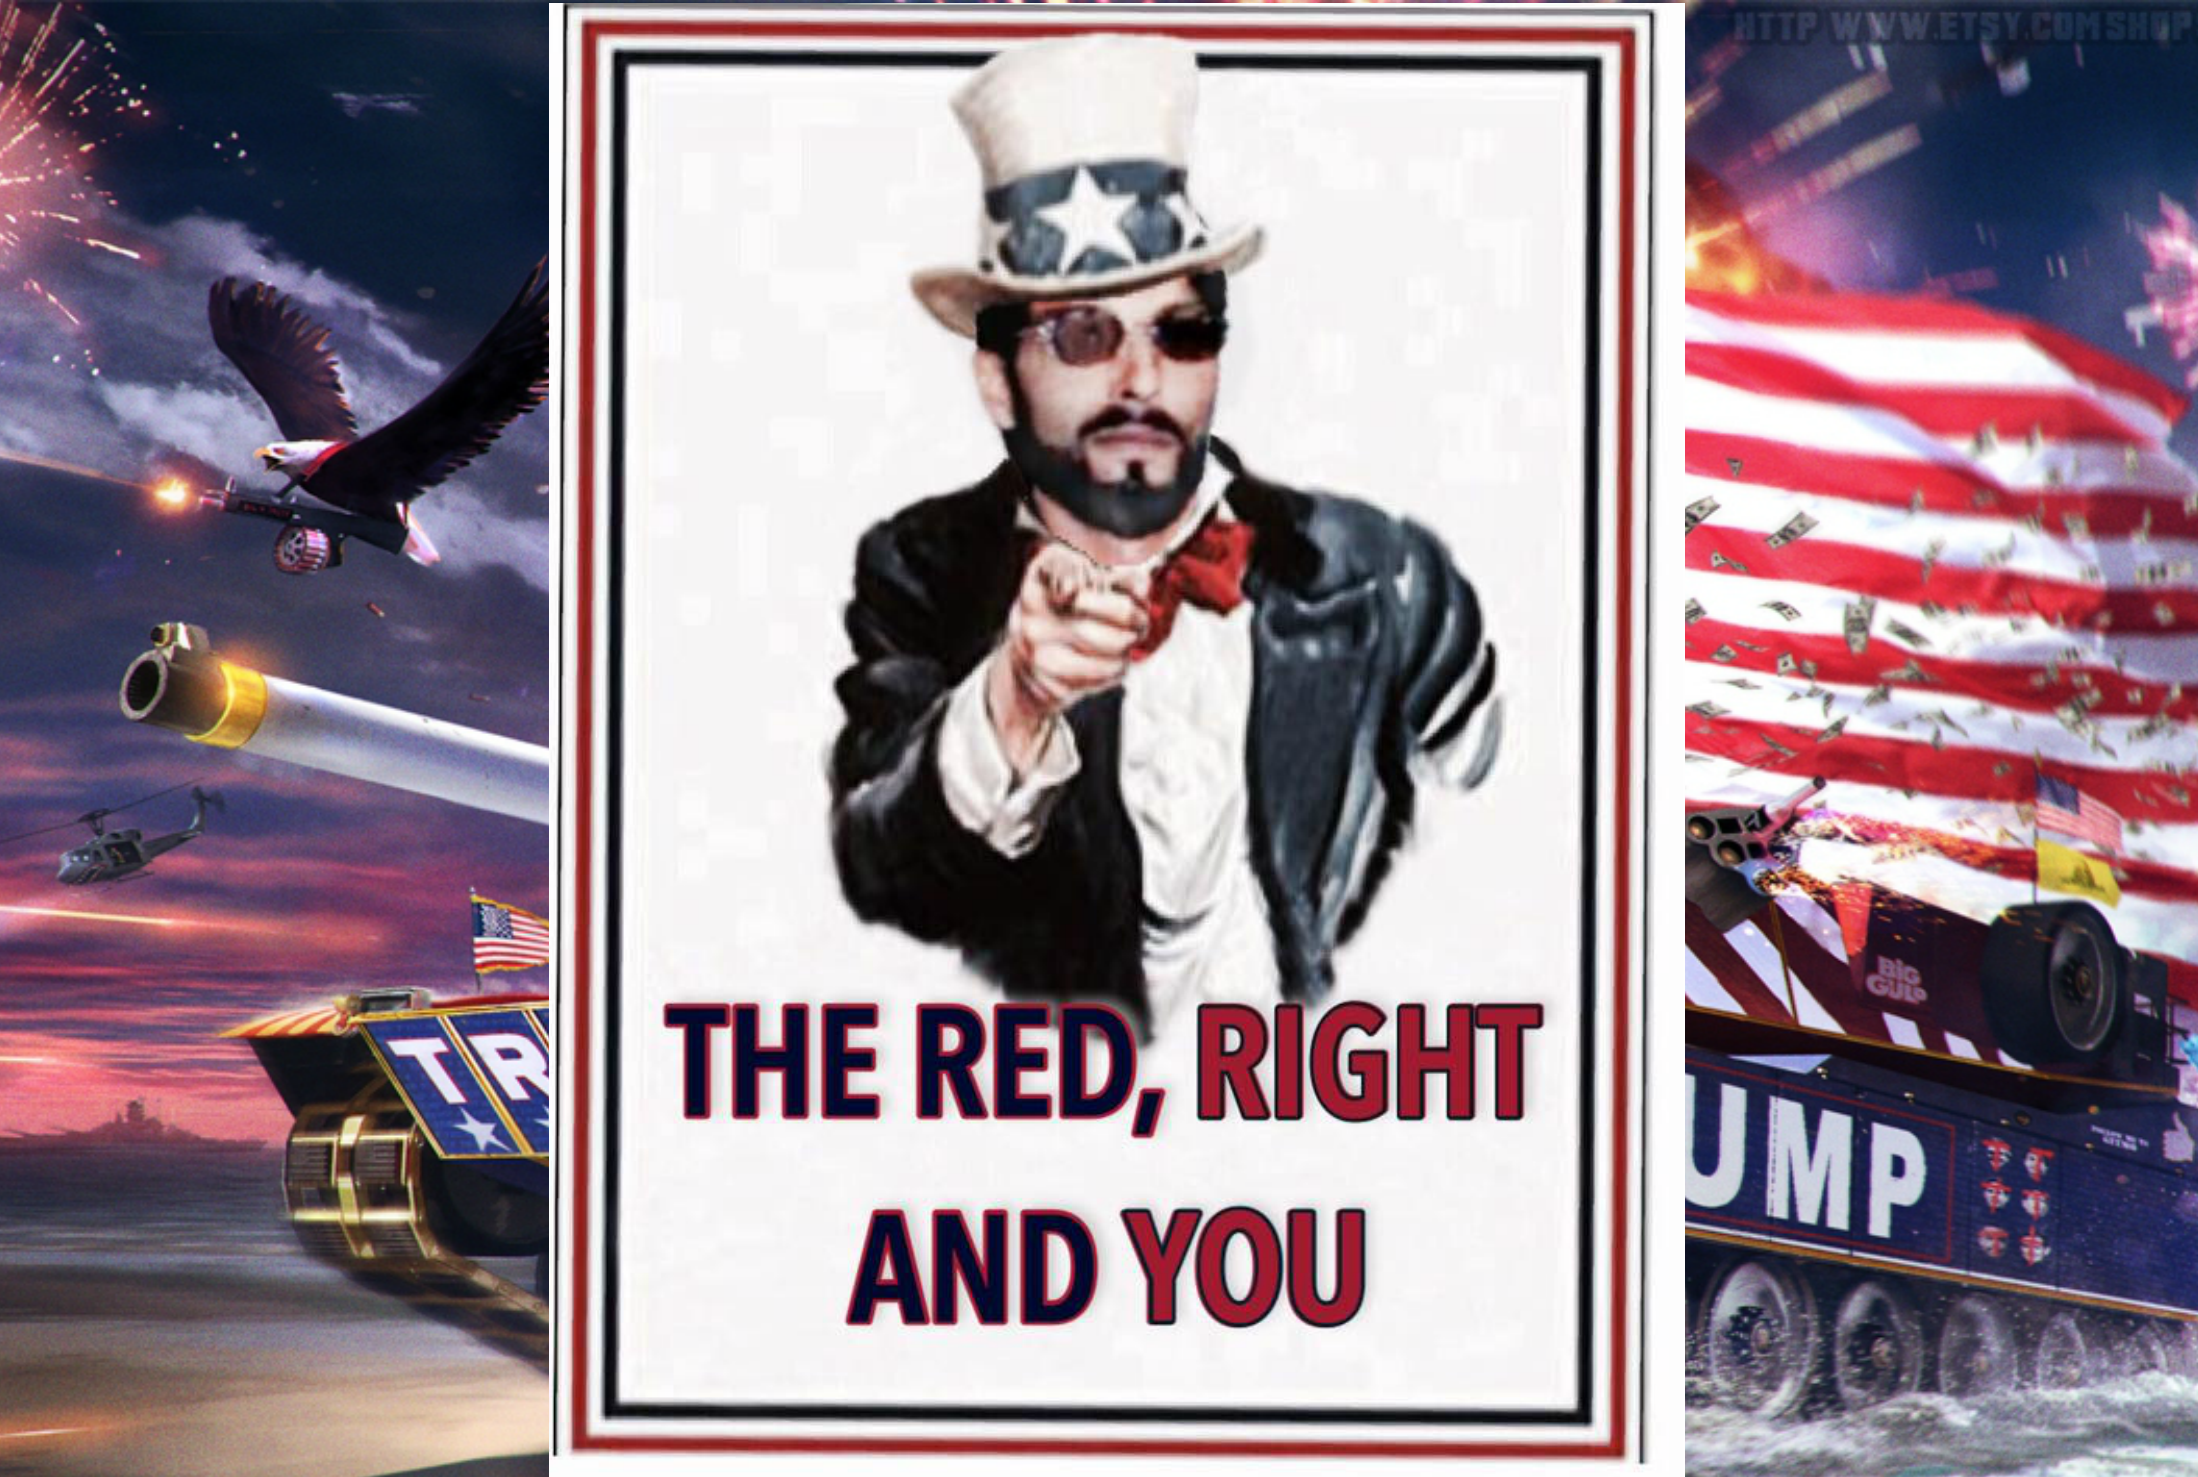 MAGA MEME By THE RED, RIGHT AND YOU